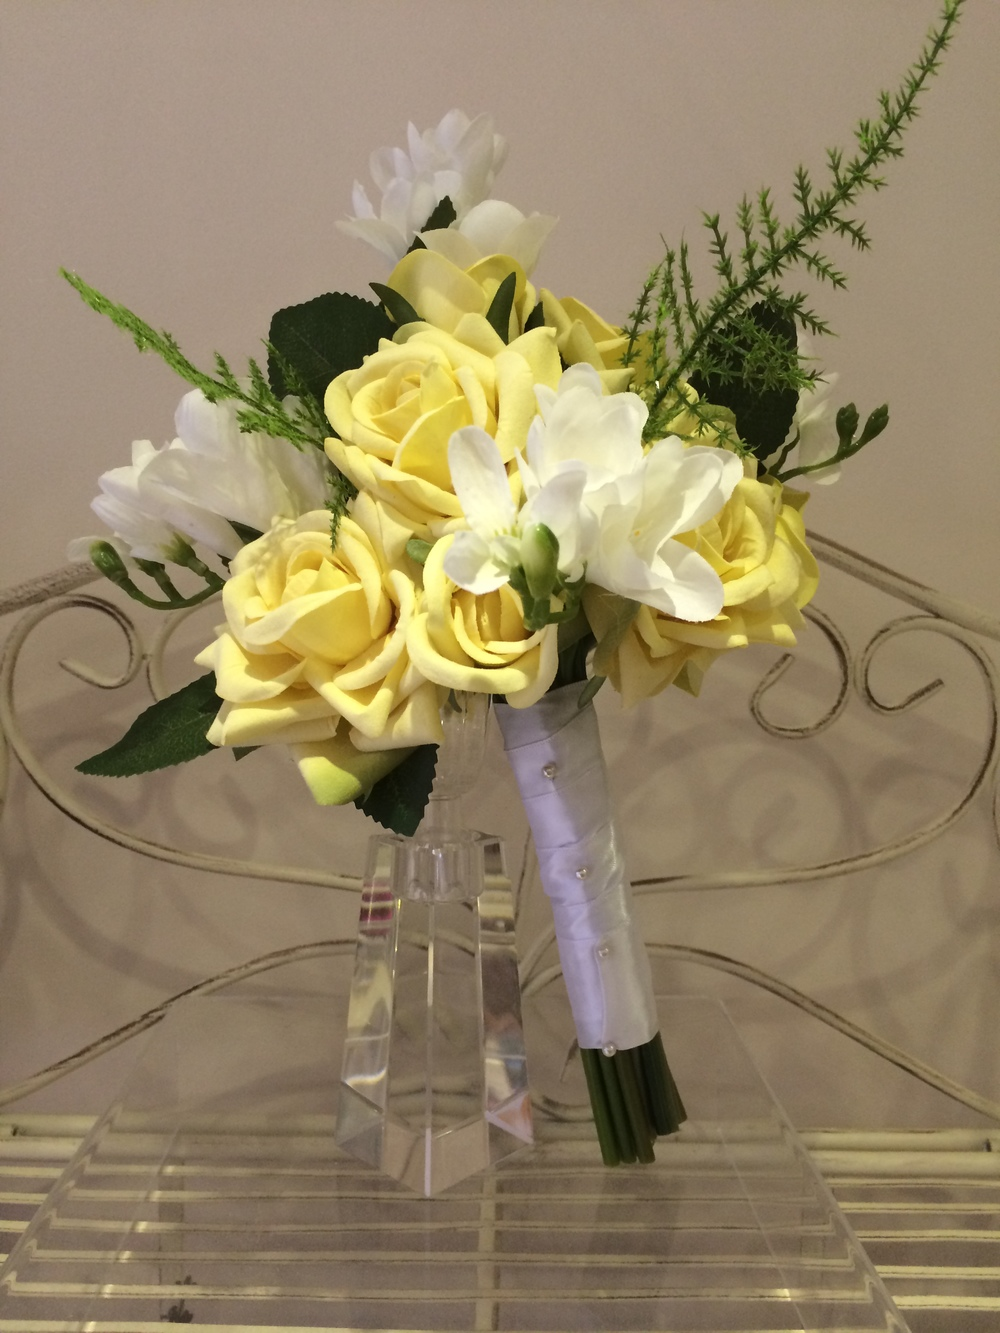 Bridesmaids Bouquet With Lemon Roses, White         Freesias & Fern